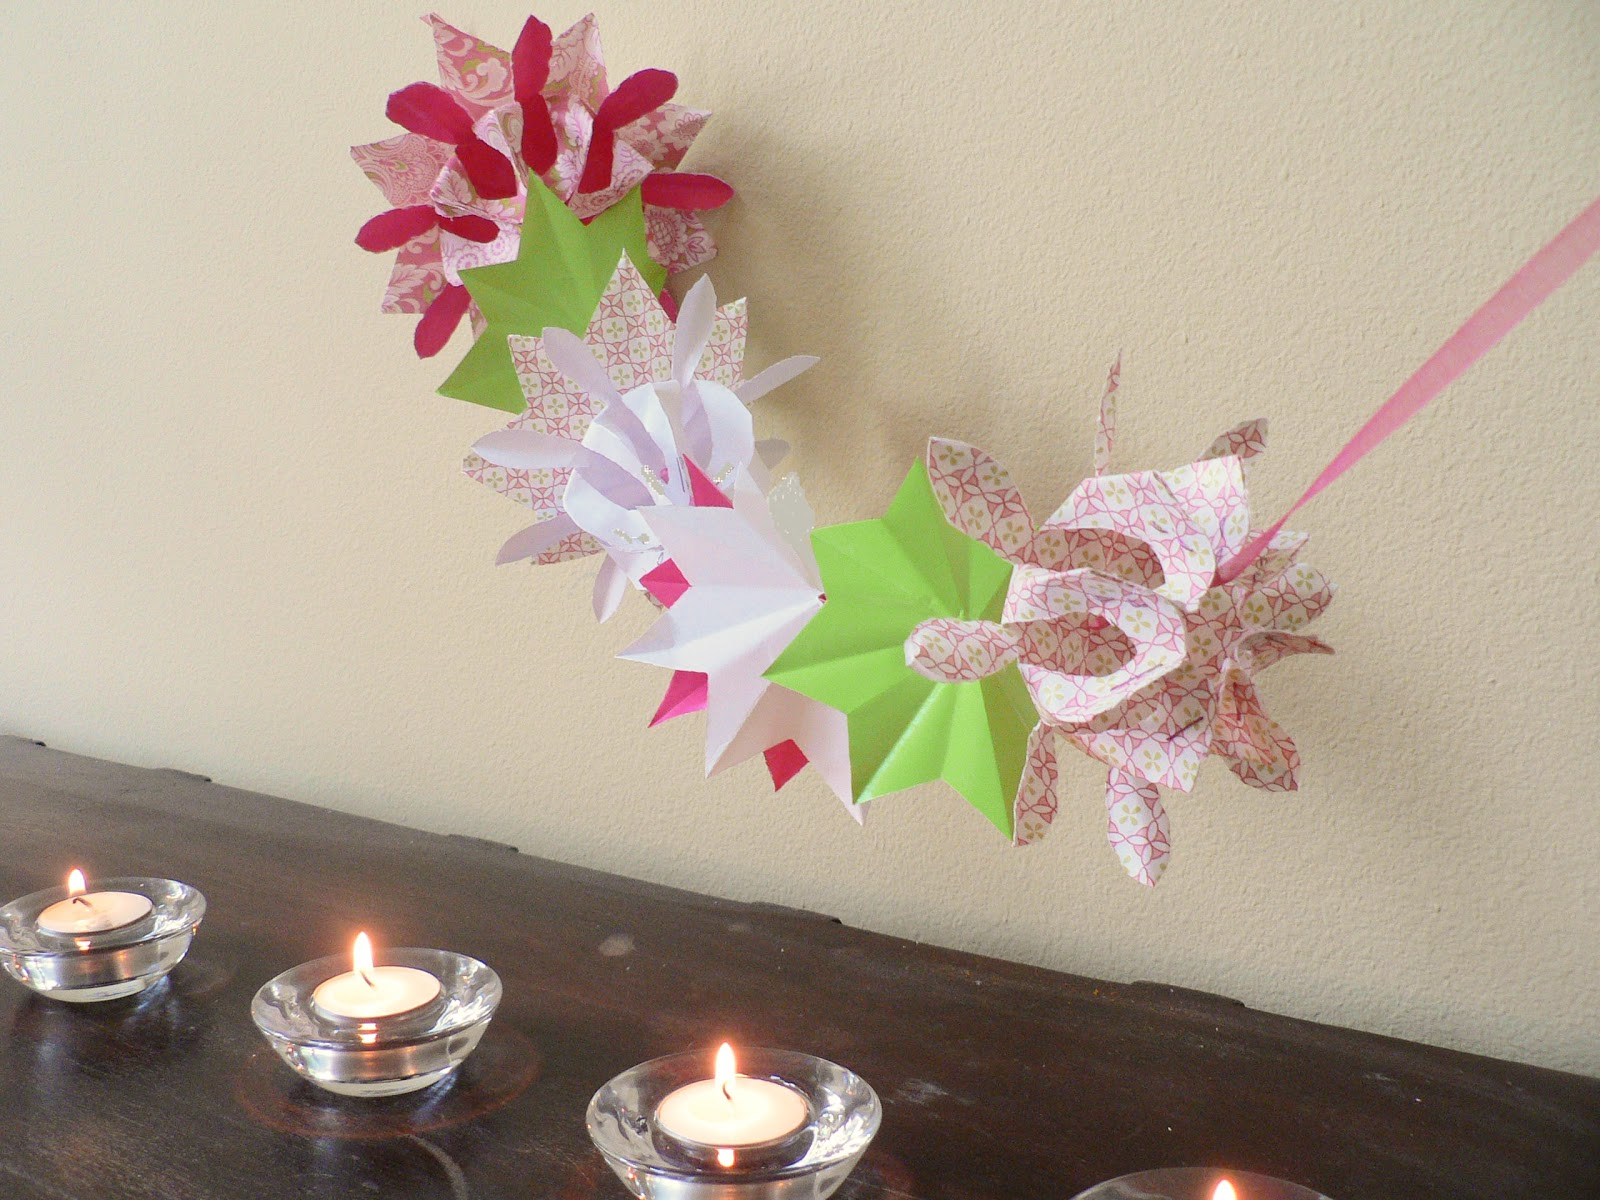 Diwali Decoration Ideas And Crafts Diwali Hand Crafts Decoration Hanging Ornaments